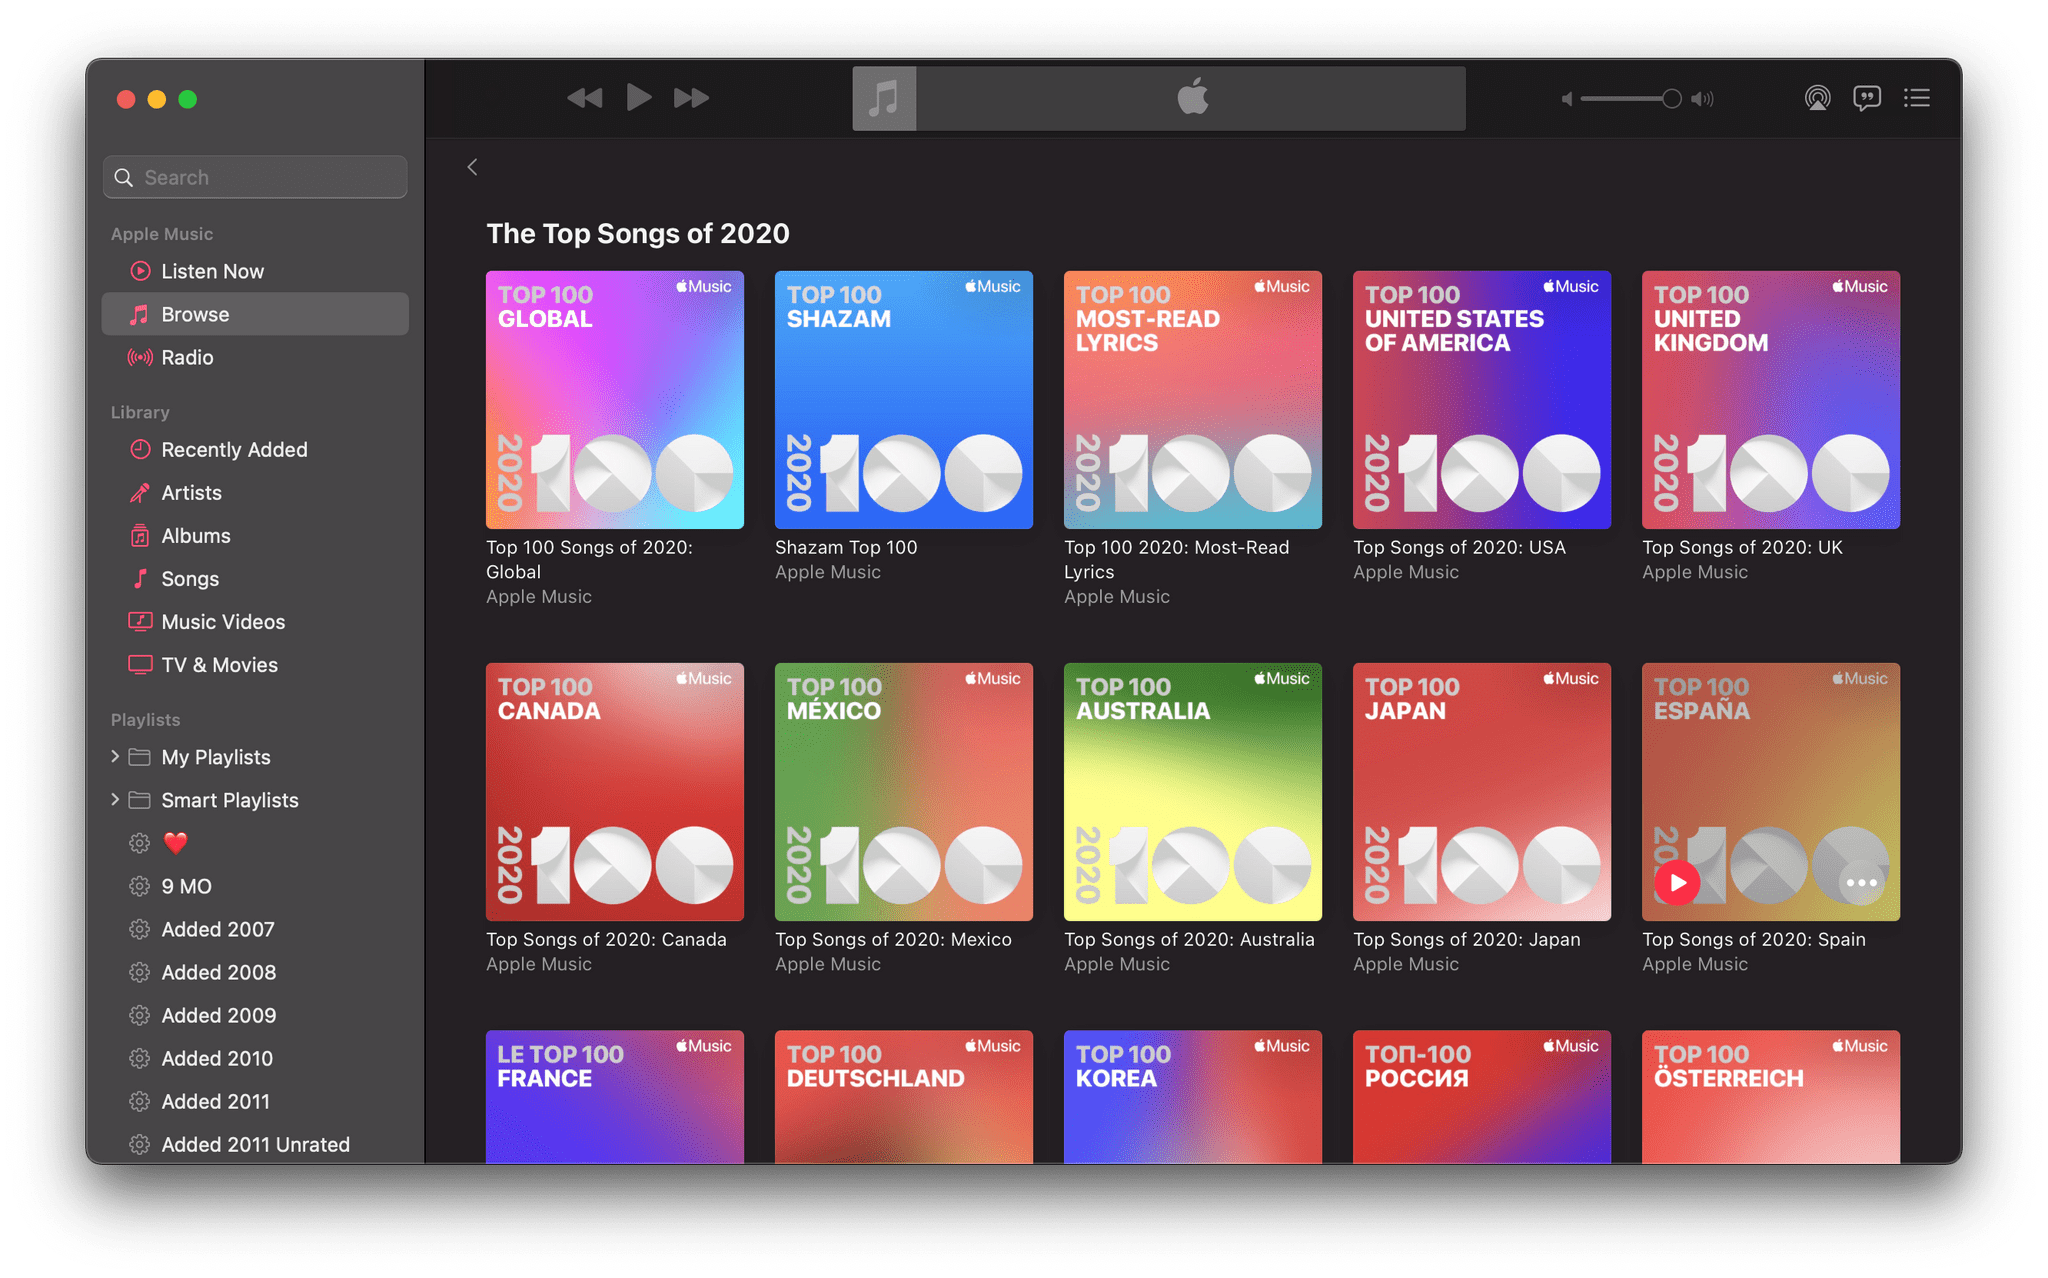 Apple's many Top 100 playlists.